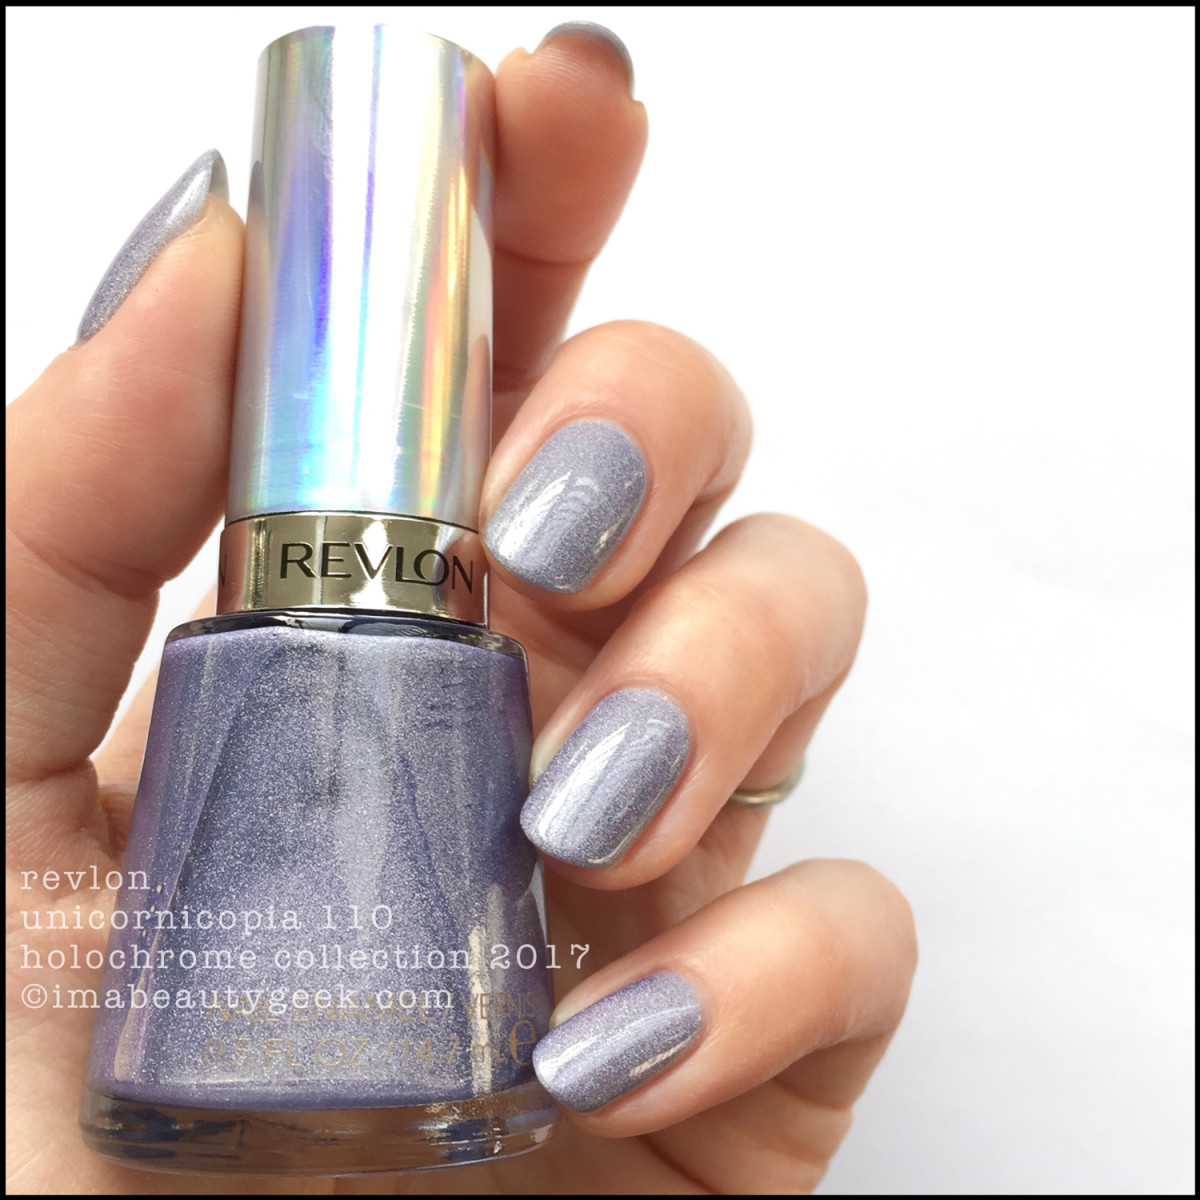 Revlon Unicornicopia 110 1 Holochrome Collection Swatches